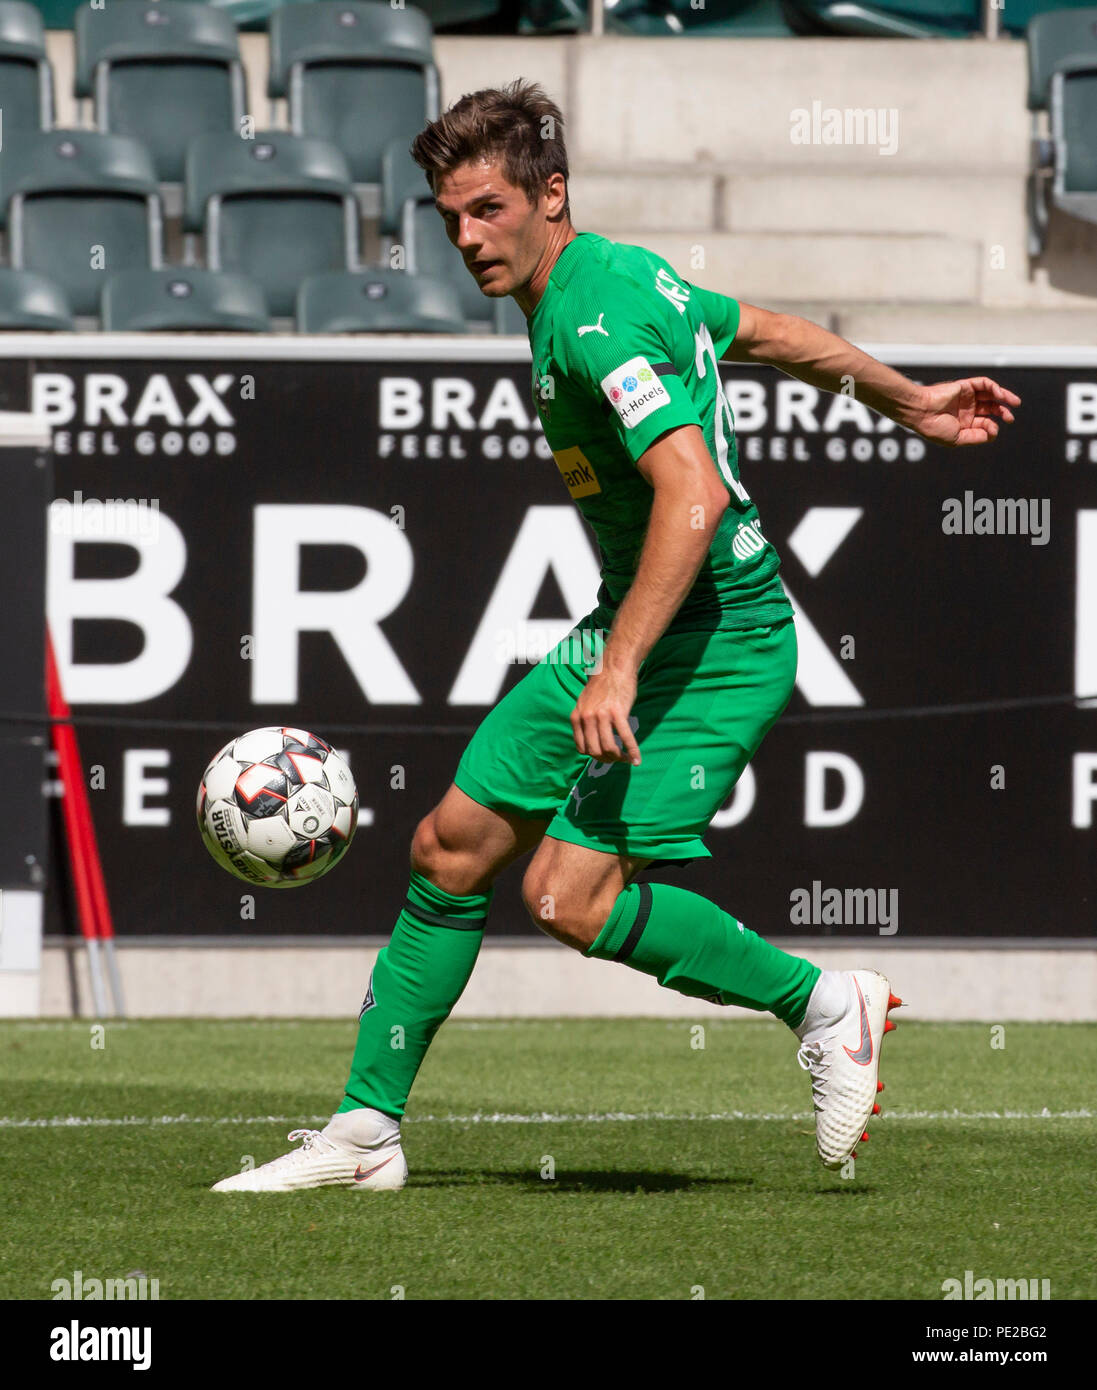 Moenchengladbach, Germany August 12 2018, friendly match, Borussia Moenchengladbach vs FC Wegberg-Beeck: Jonas Hofmann (BMG) in action.                Credit: Juergen Schwarz/Alamy Live News - Stock Image